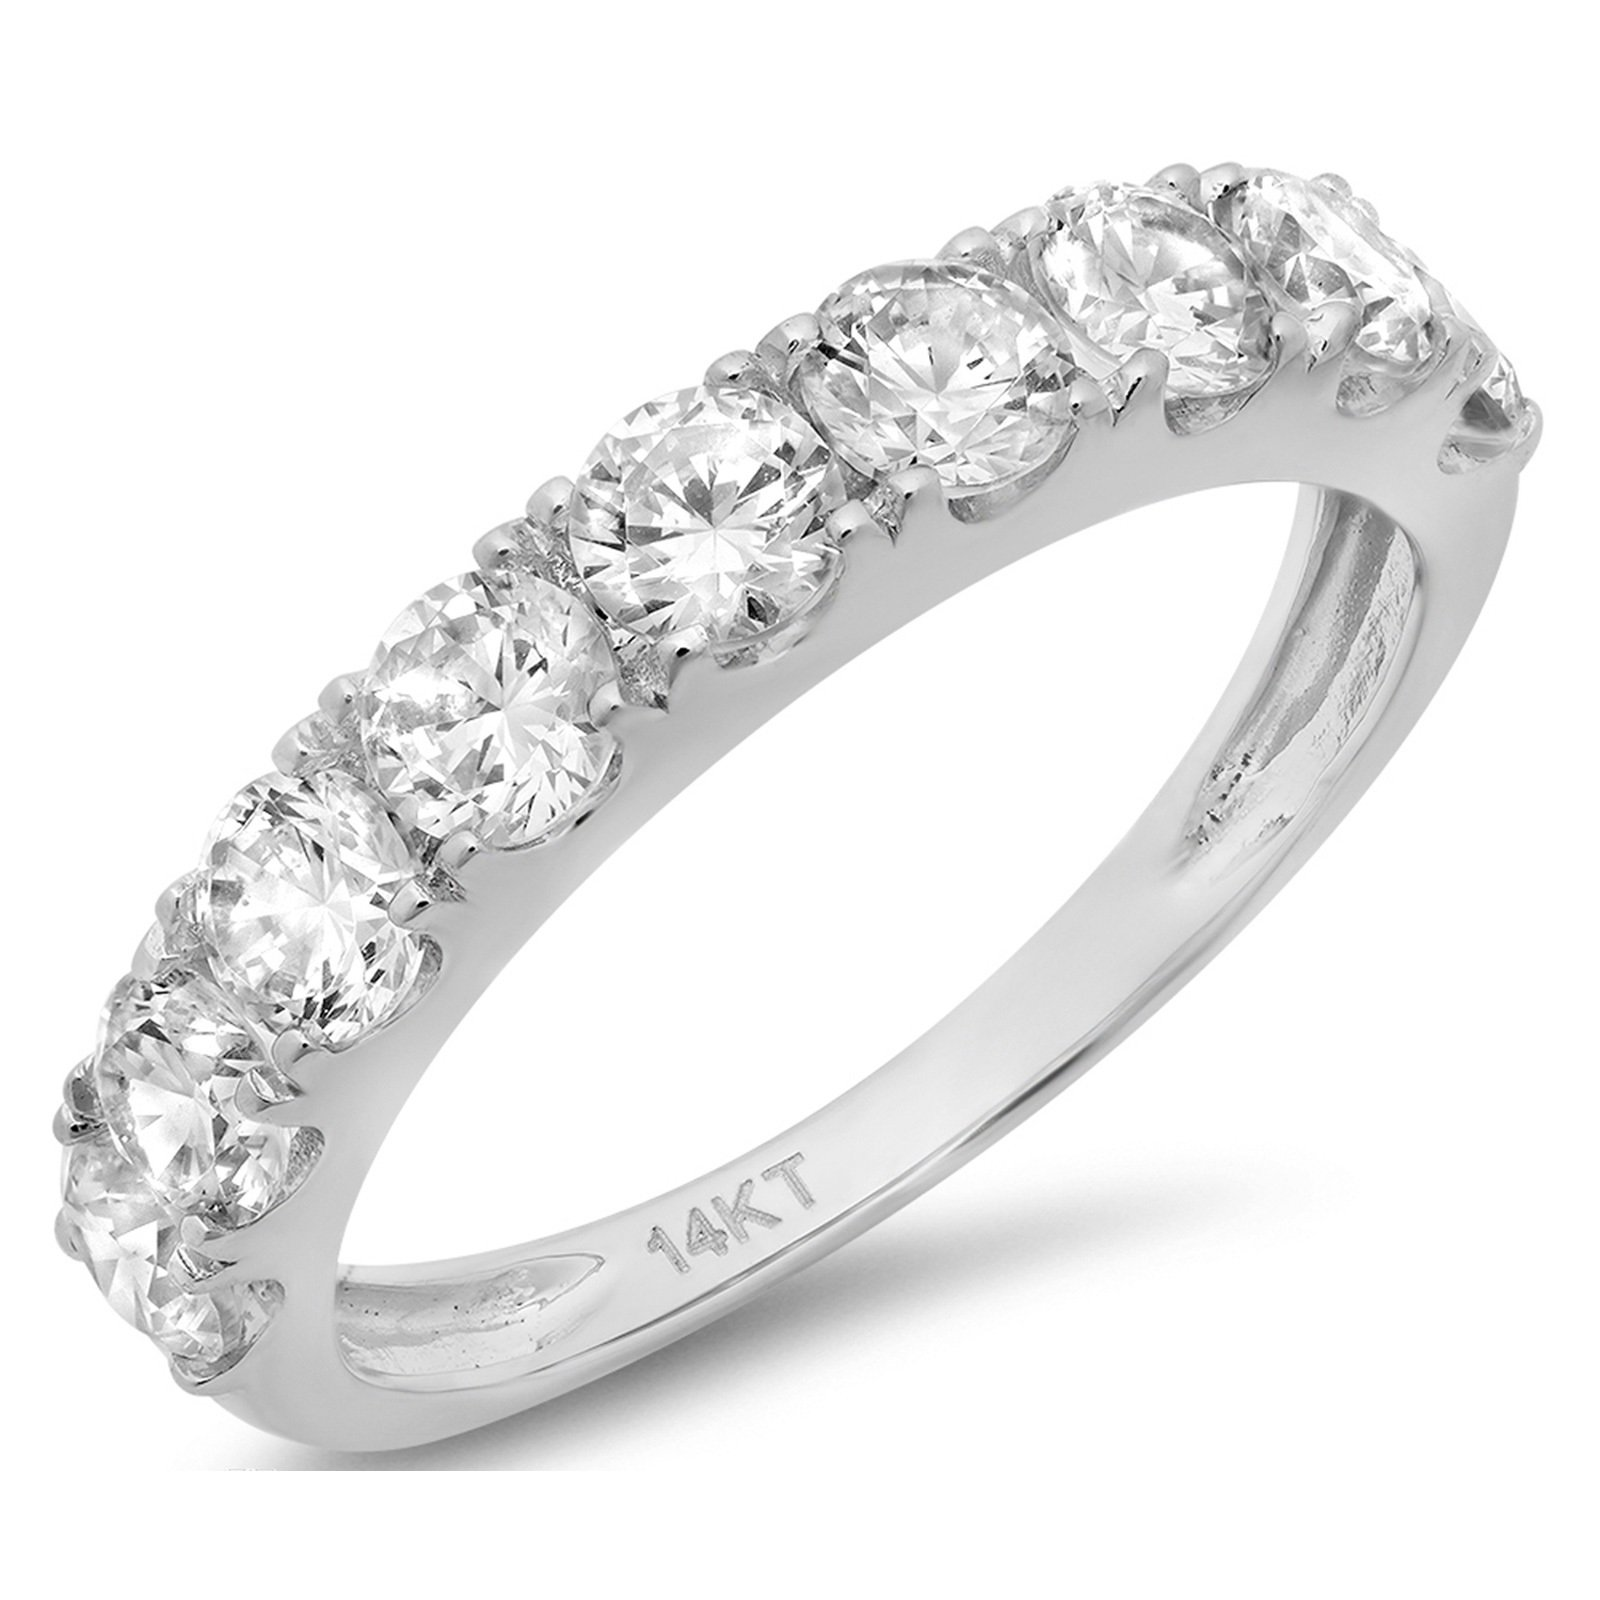 Clara Pucci 1.4 CT Round Cut CZ Pave Set Bridal Wedding Engagement Band Ring 14kt White Gold, Size 5.75